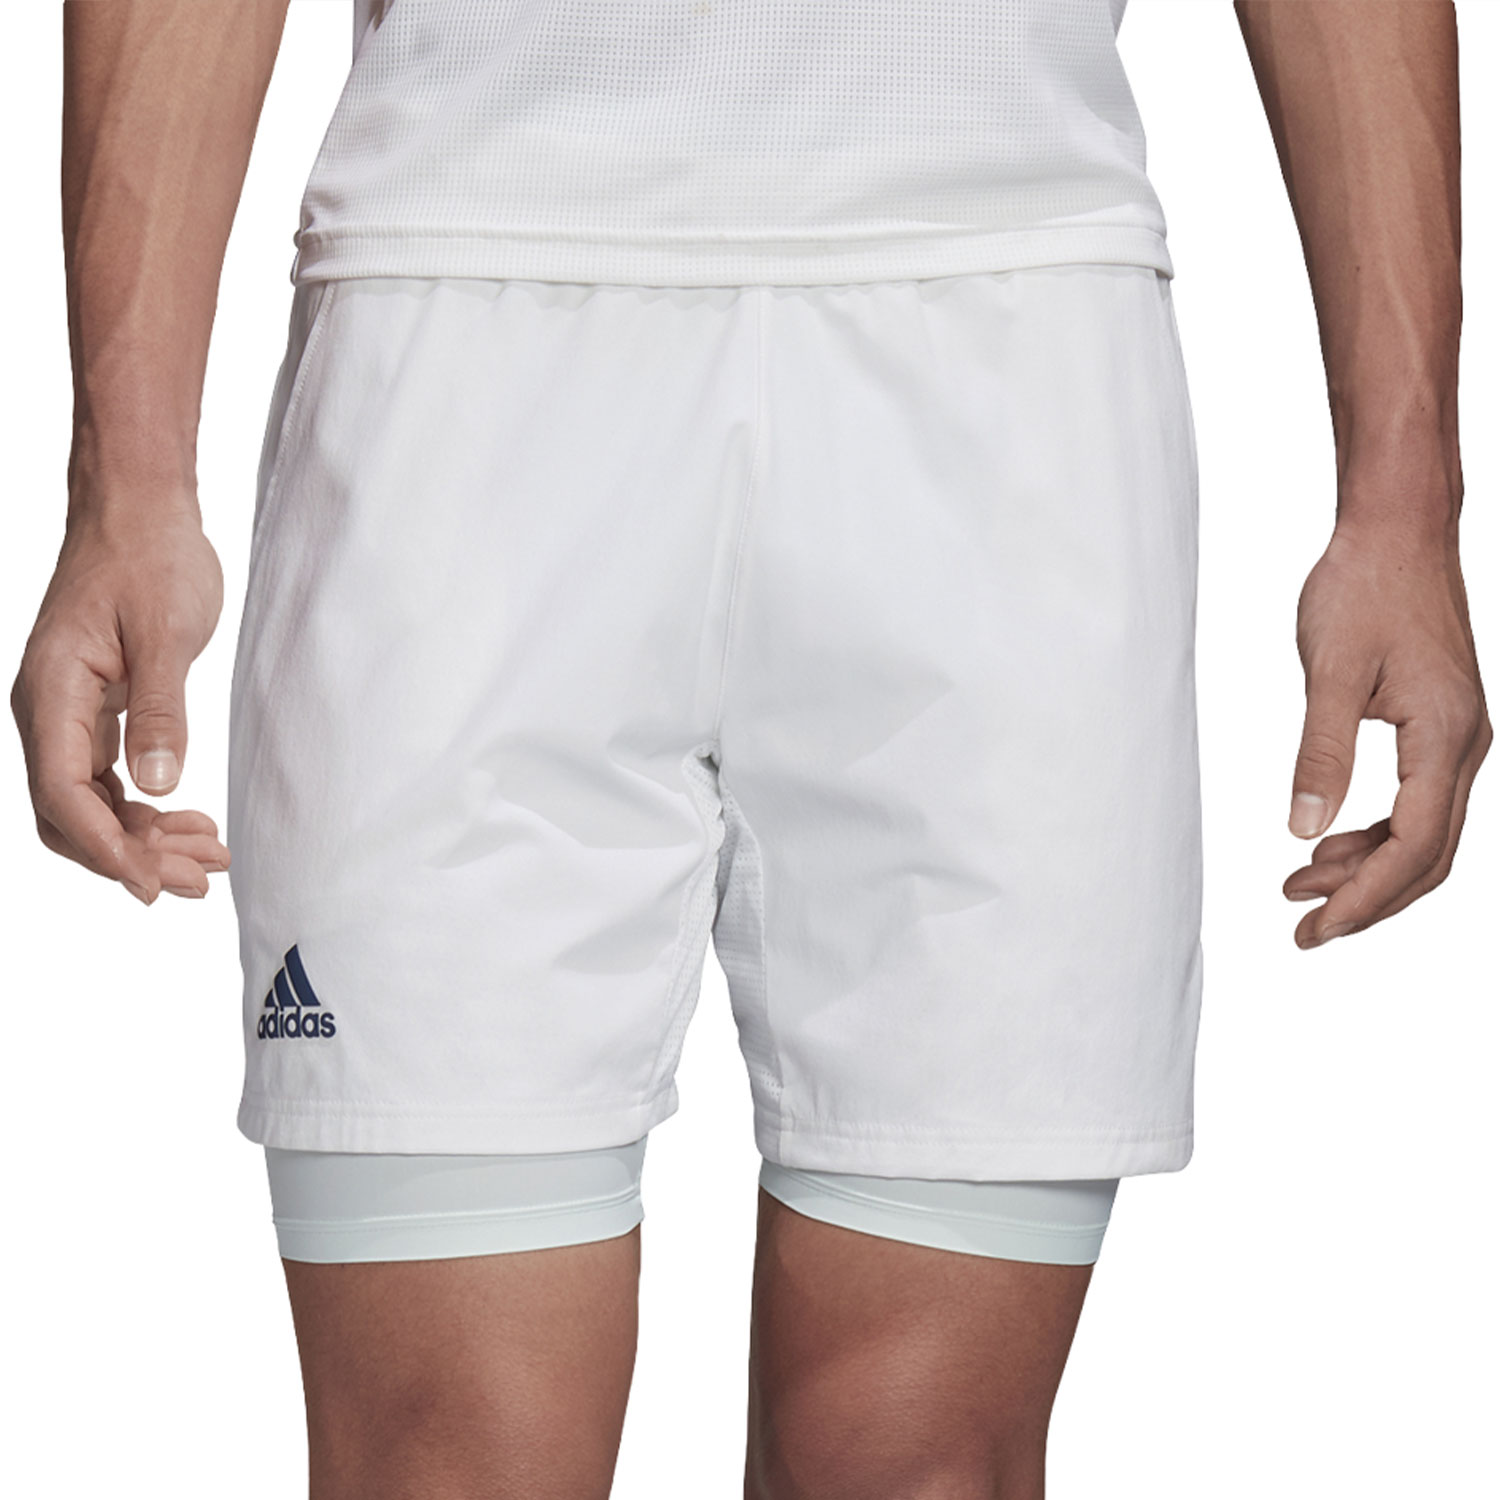 adidas shorts 2 in 1